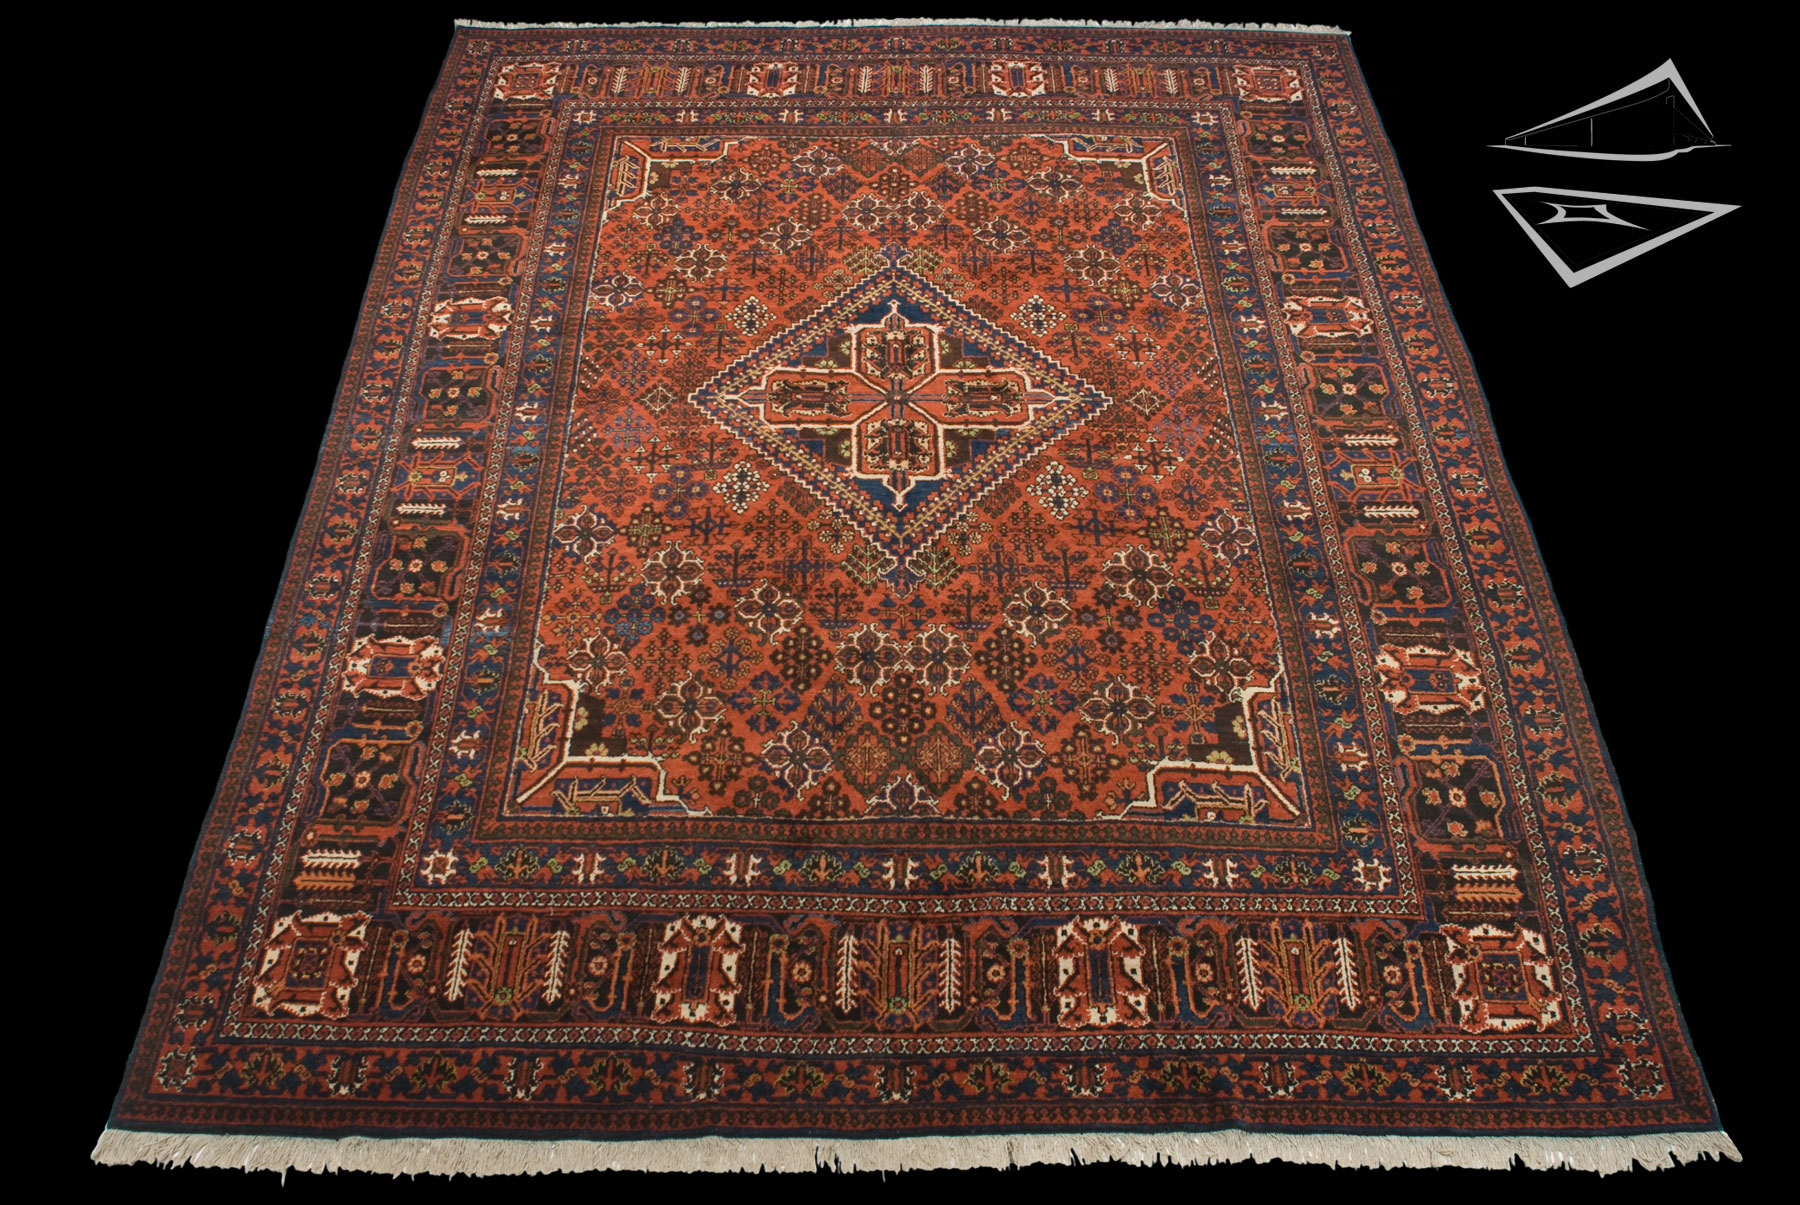 11 X 14 Rug - Rugs Ideas